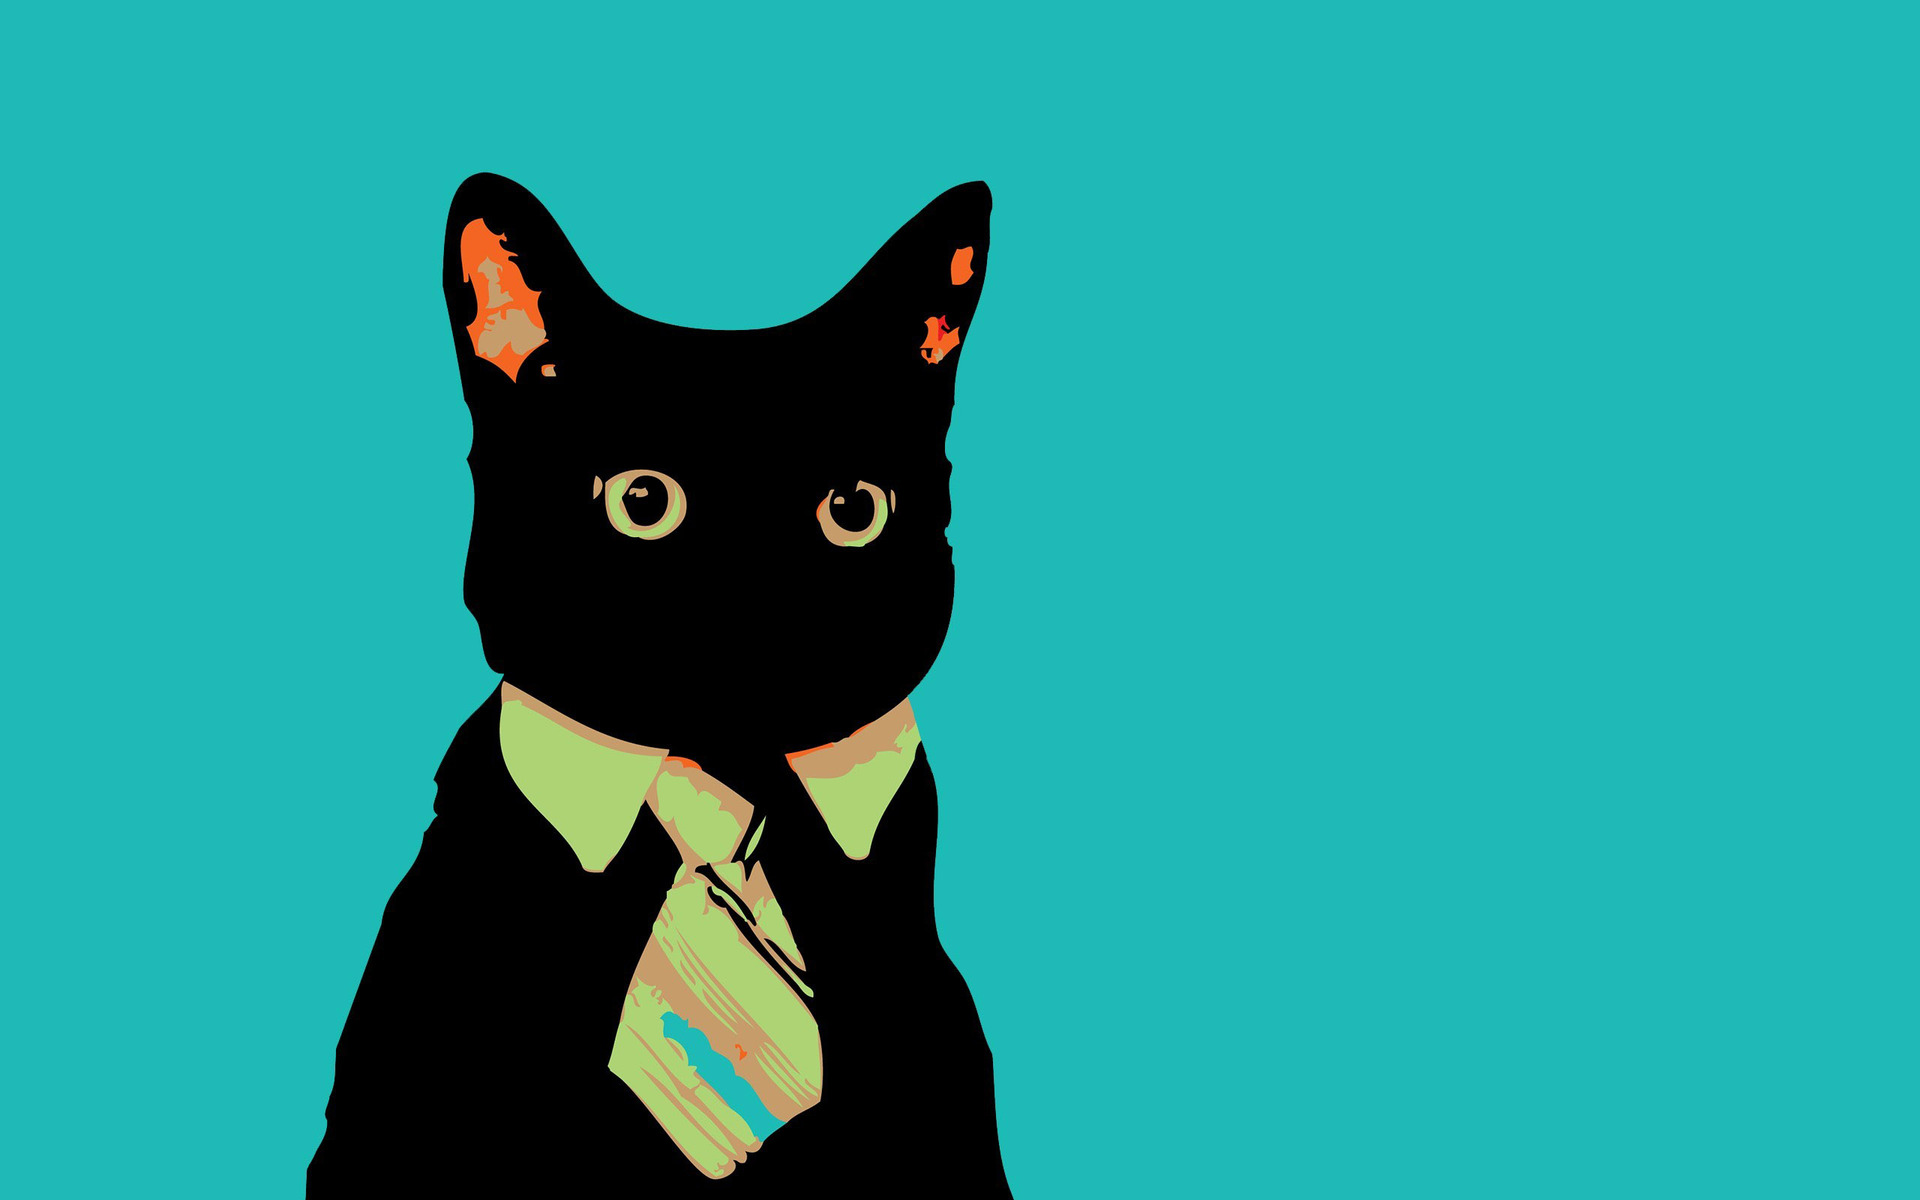 business cat meme meme hd wallpaper 1920x1200 6867jpg 1920x1200